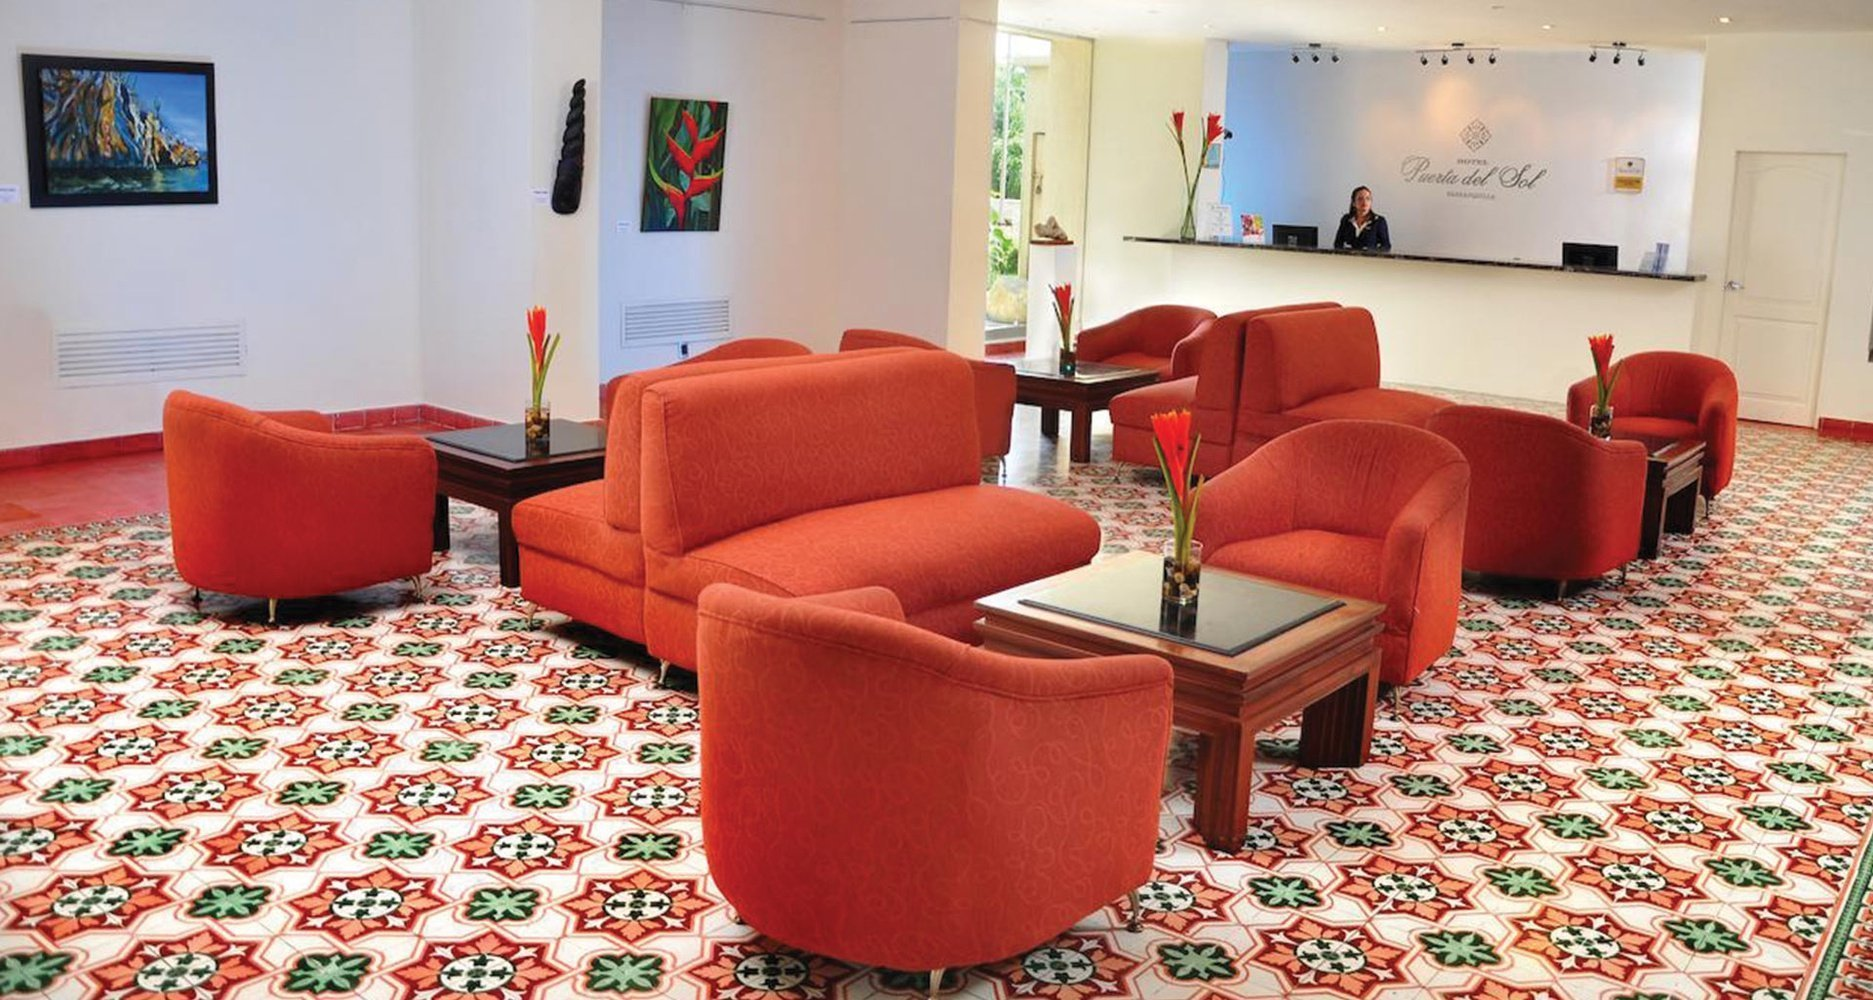 Contemporary elegance, comfort and good service hotel faranda express puerta del sol barranquilla